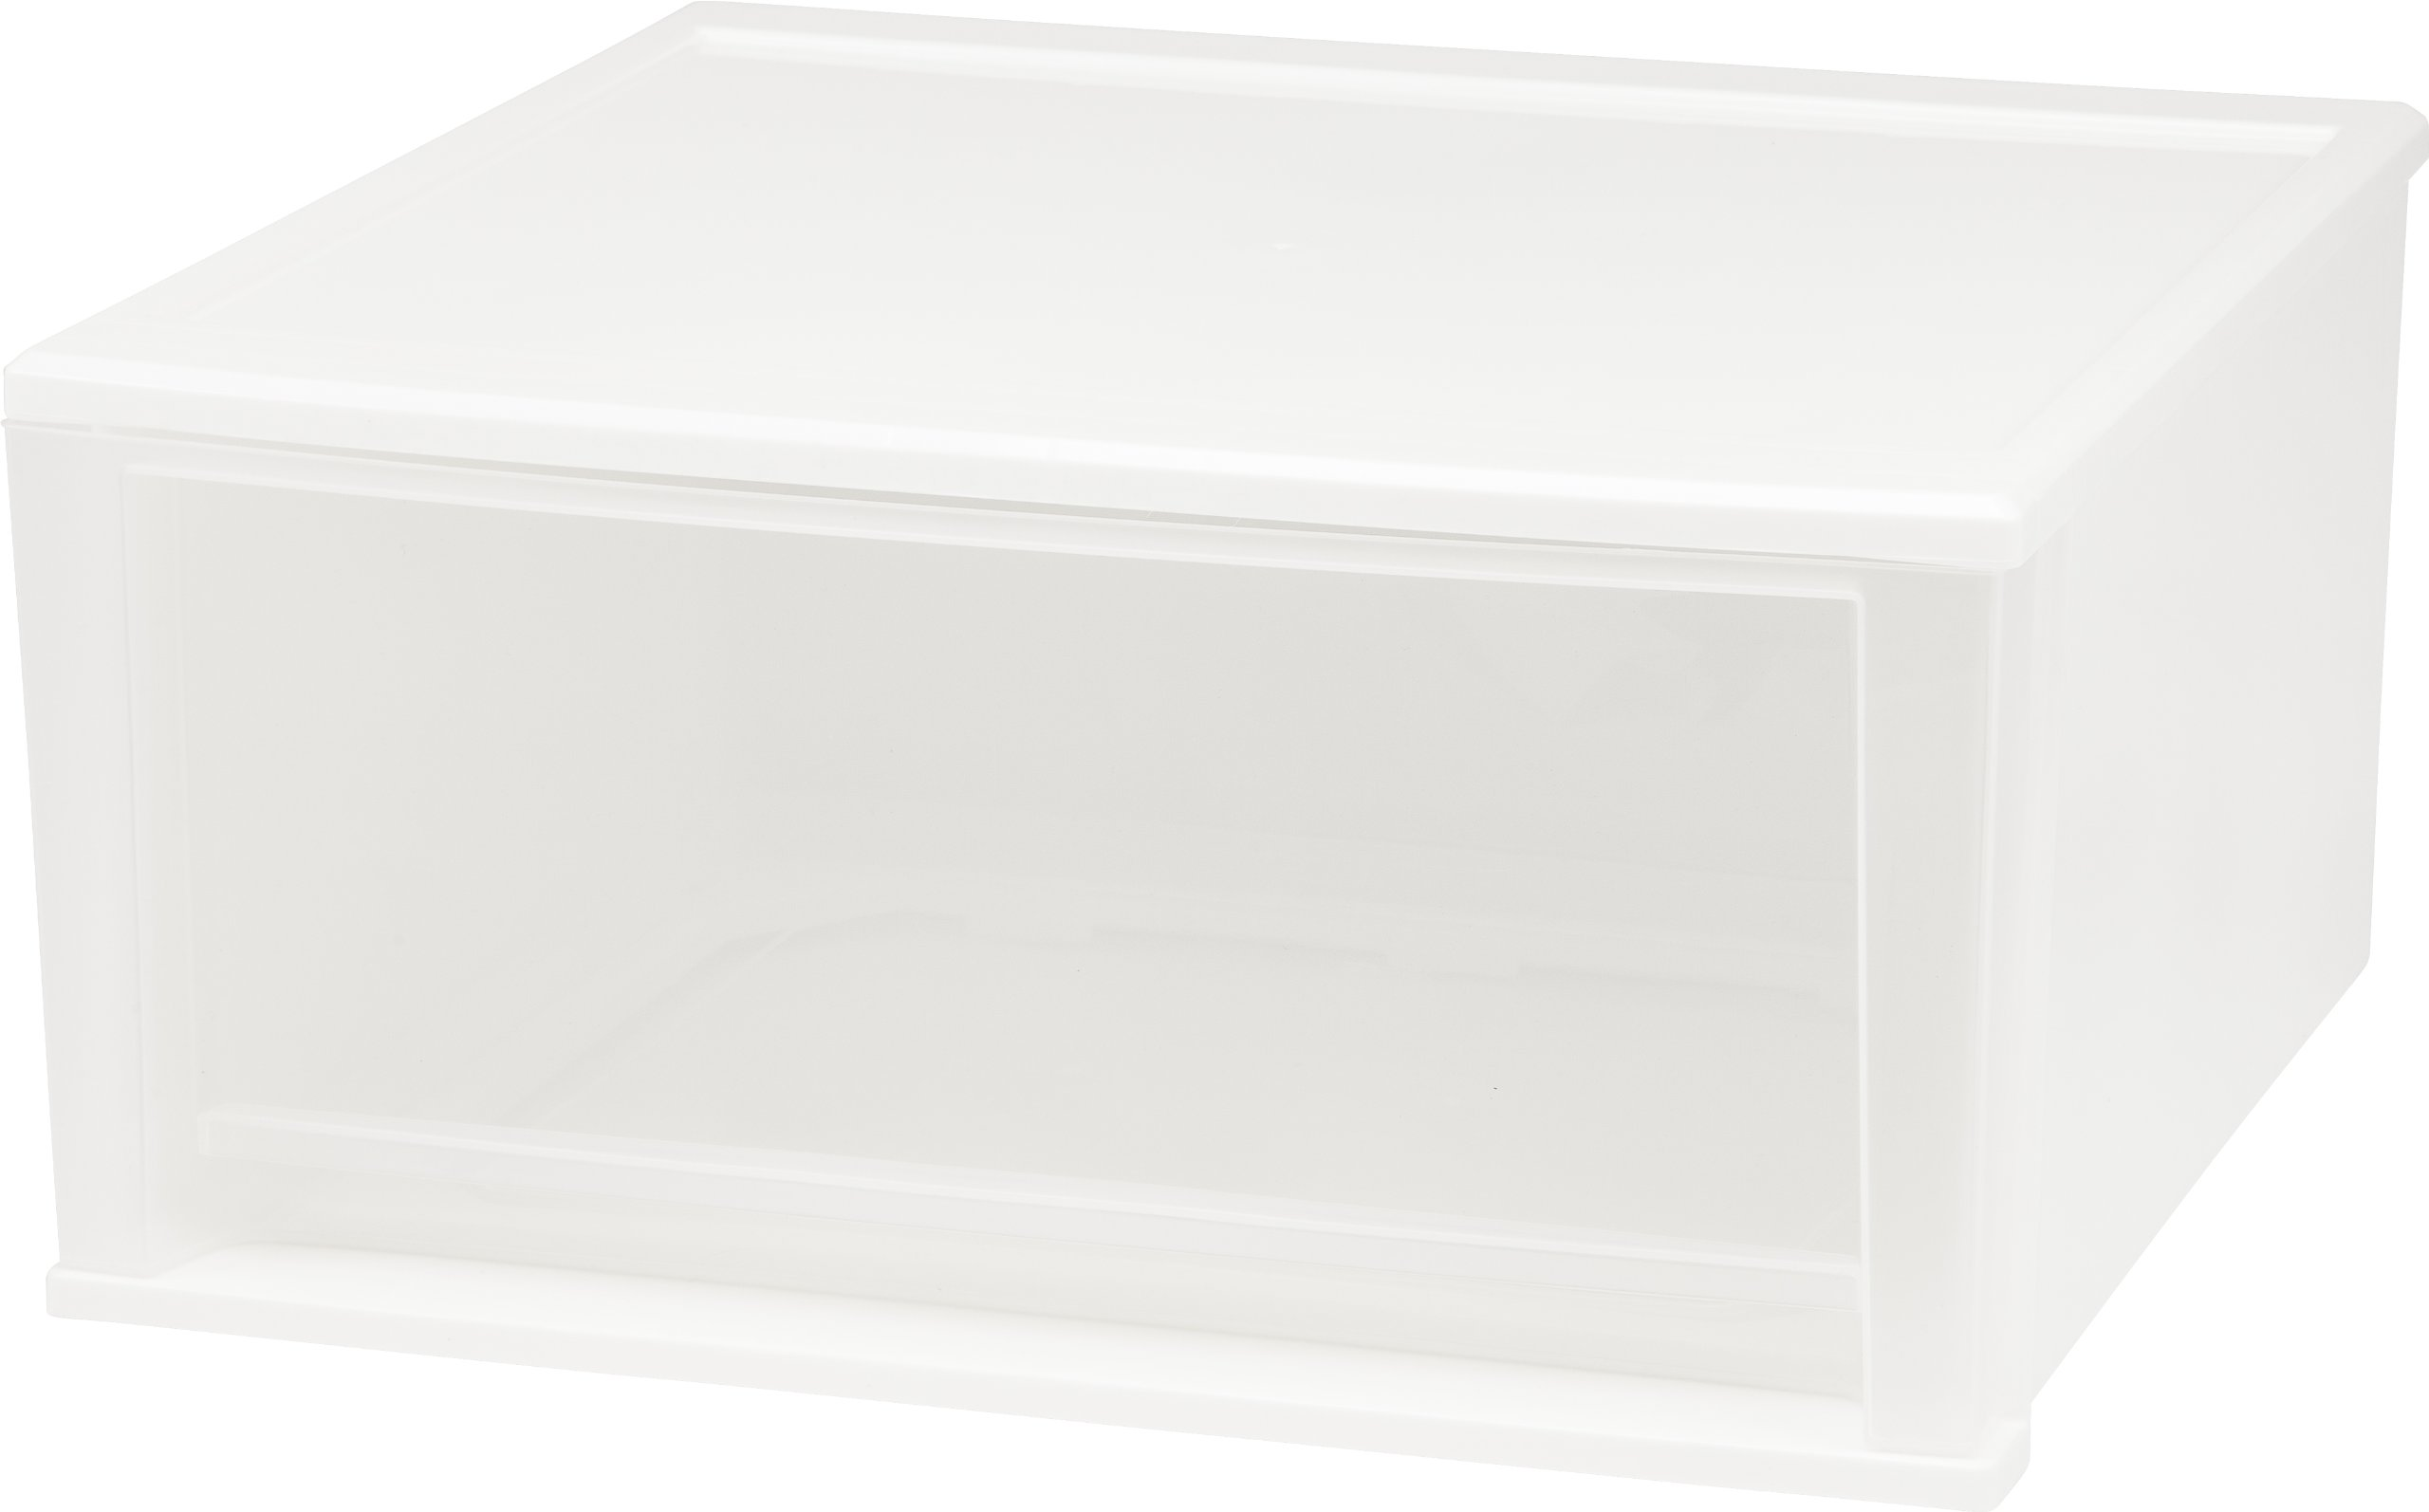 IRIS USA, Inc. SD-52 IRIS 51 Quart Stacking Drawer, 2 Pack, White, 2 Count by IRIS USA, Inc.